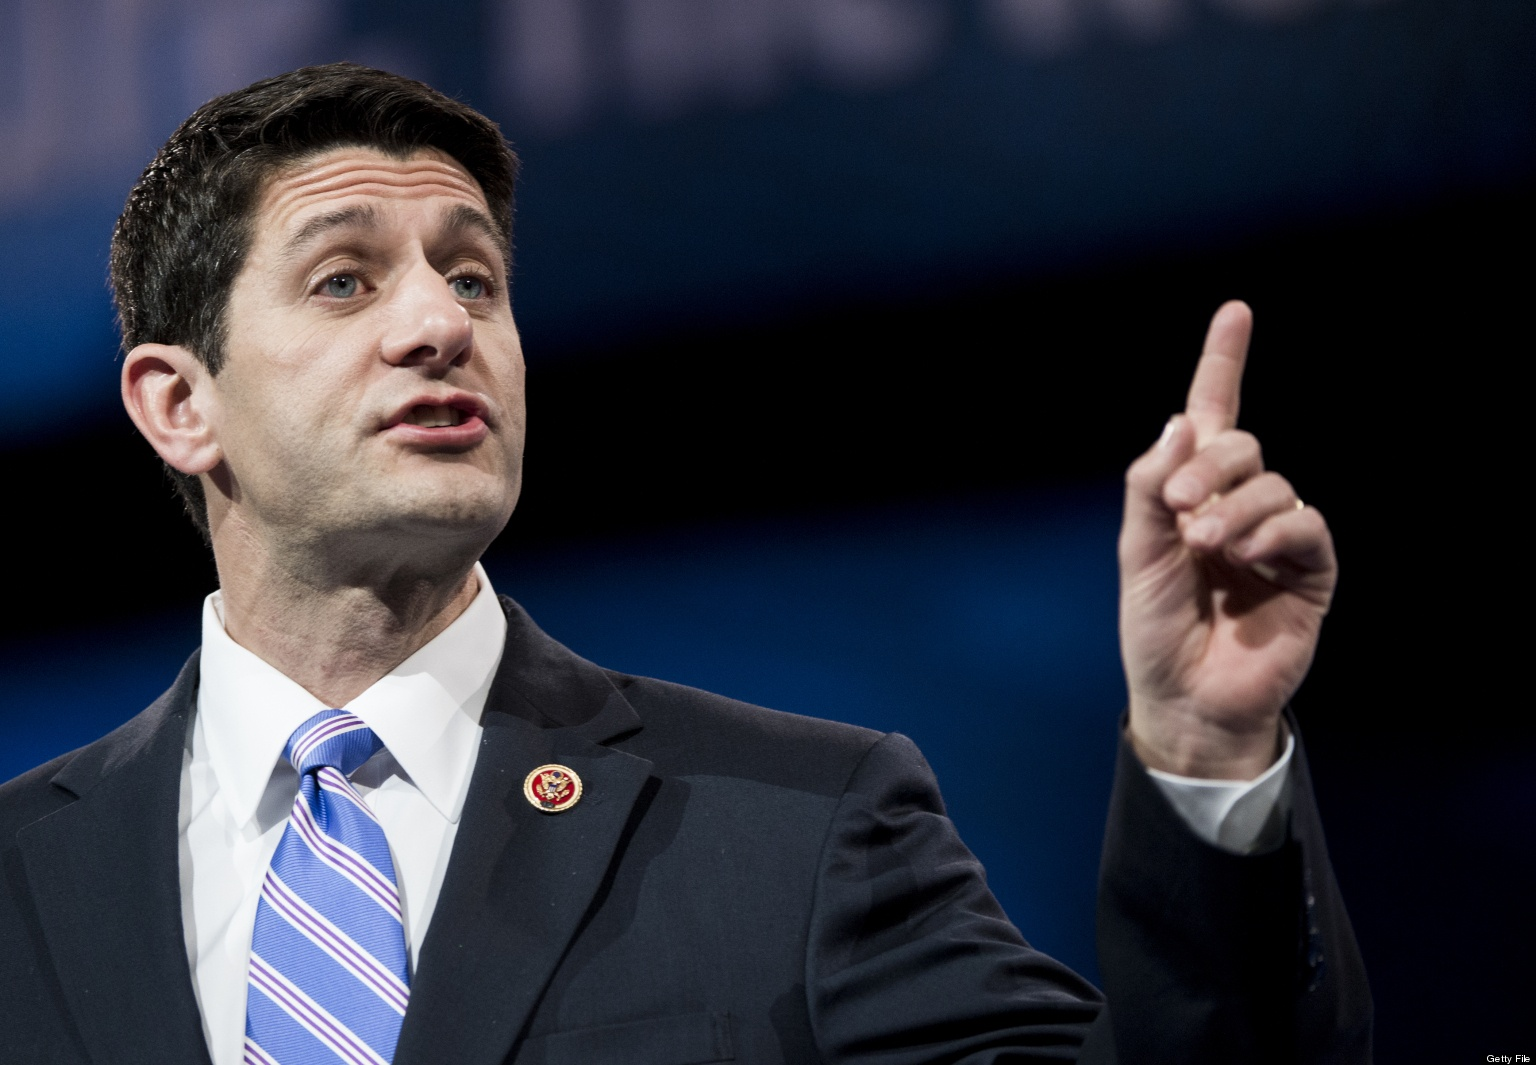 Why Paul Ryan as House Speaker?